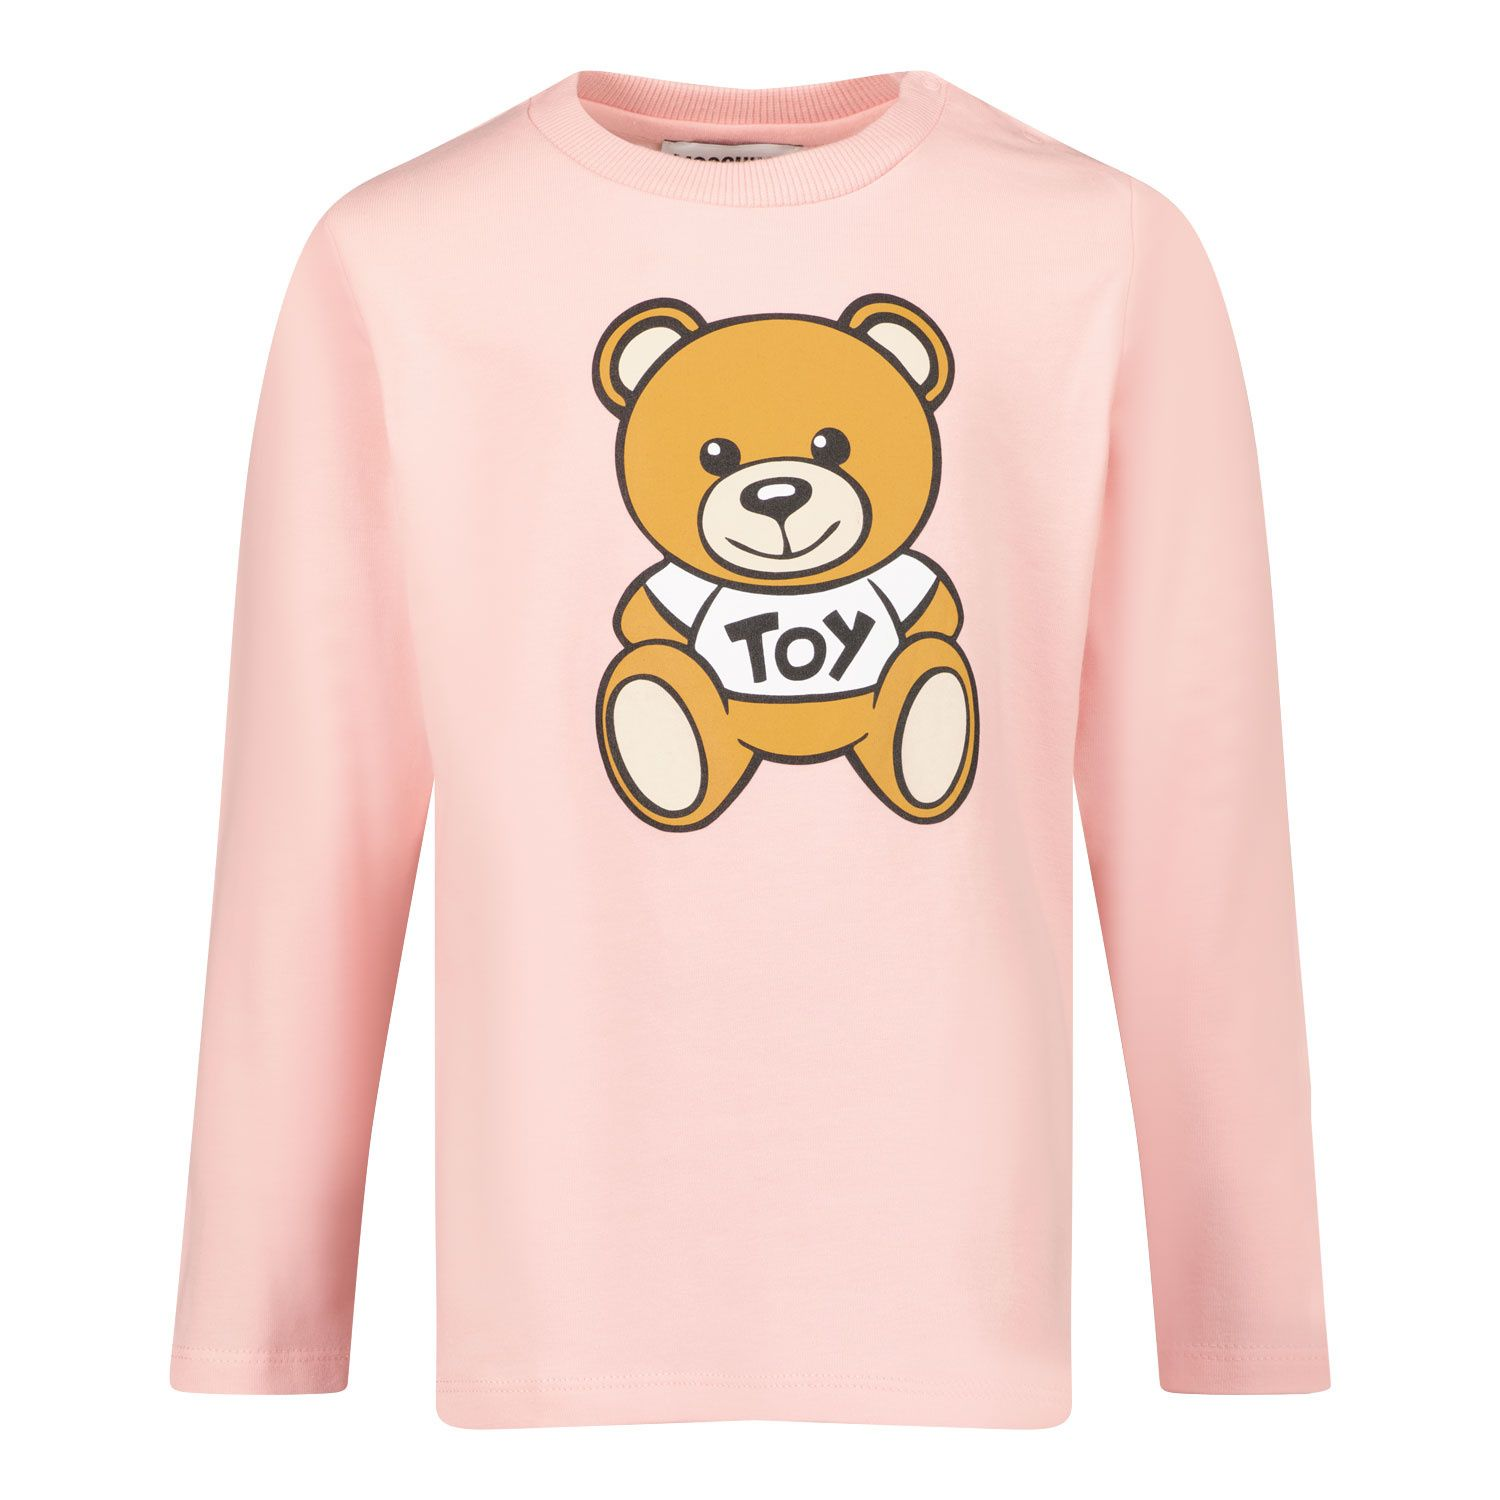 Picture of Moschino MOO005 baby shirt light pink